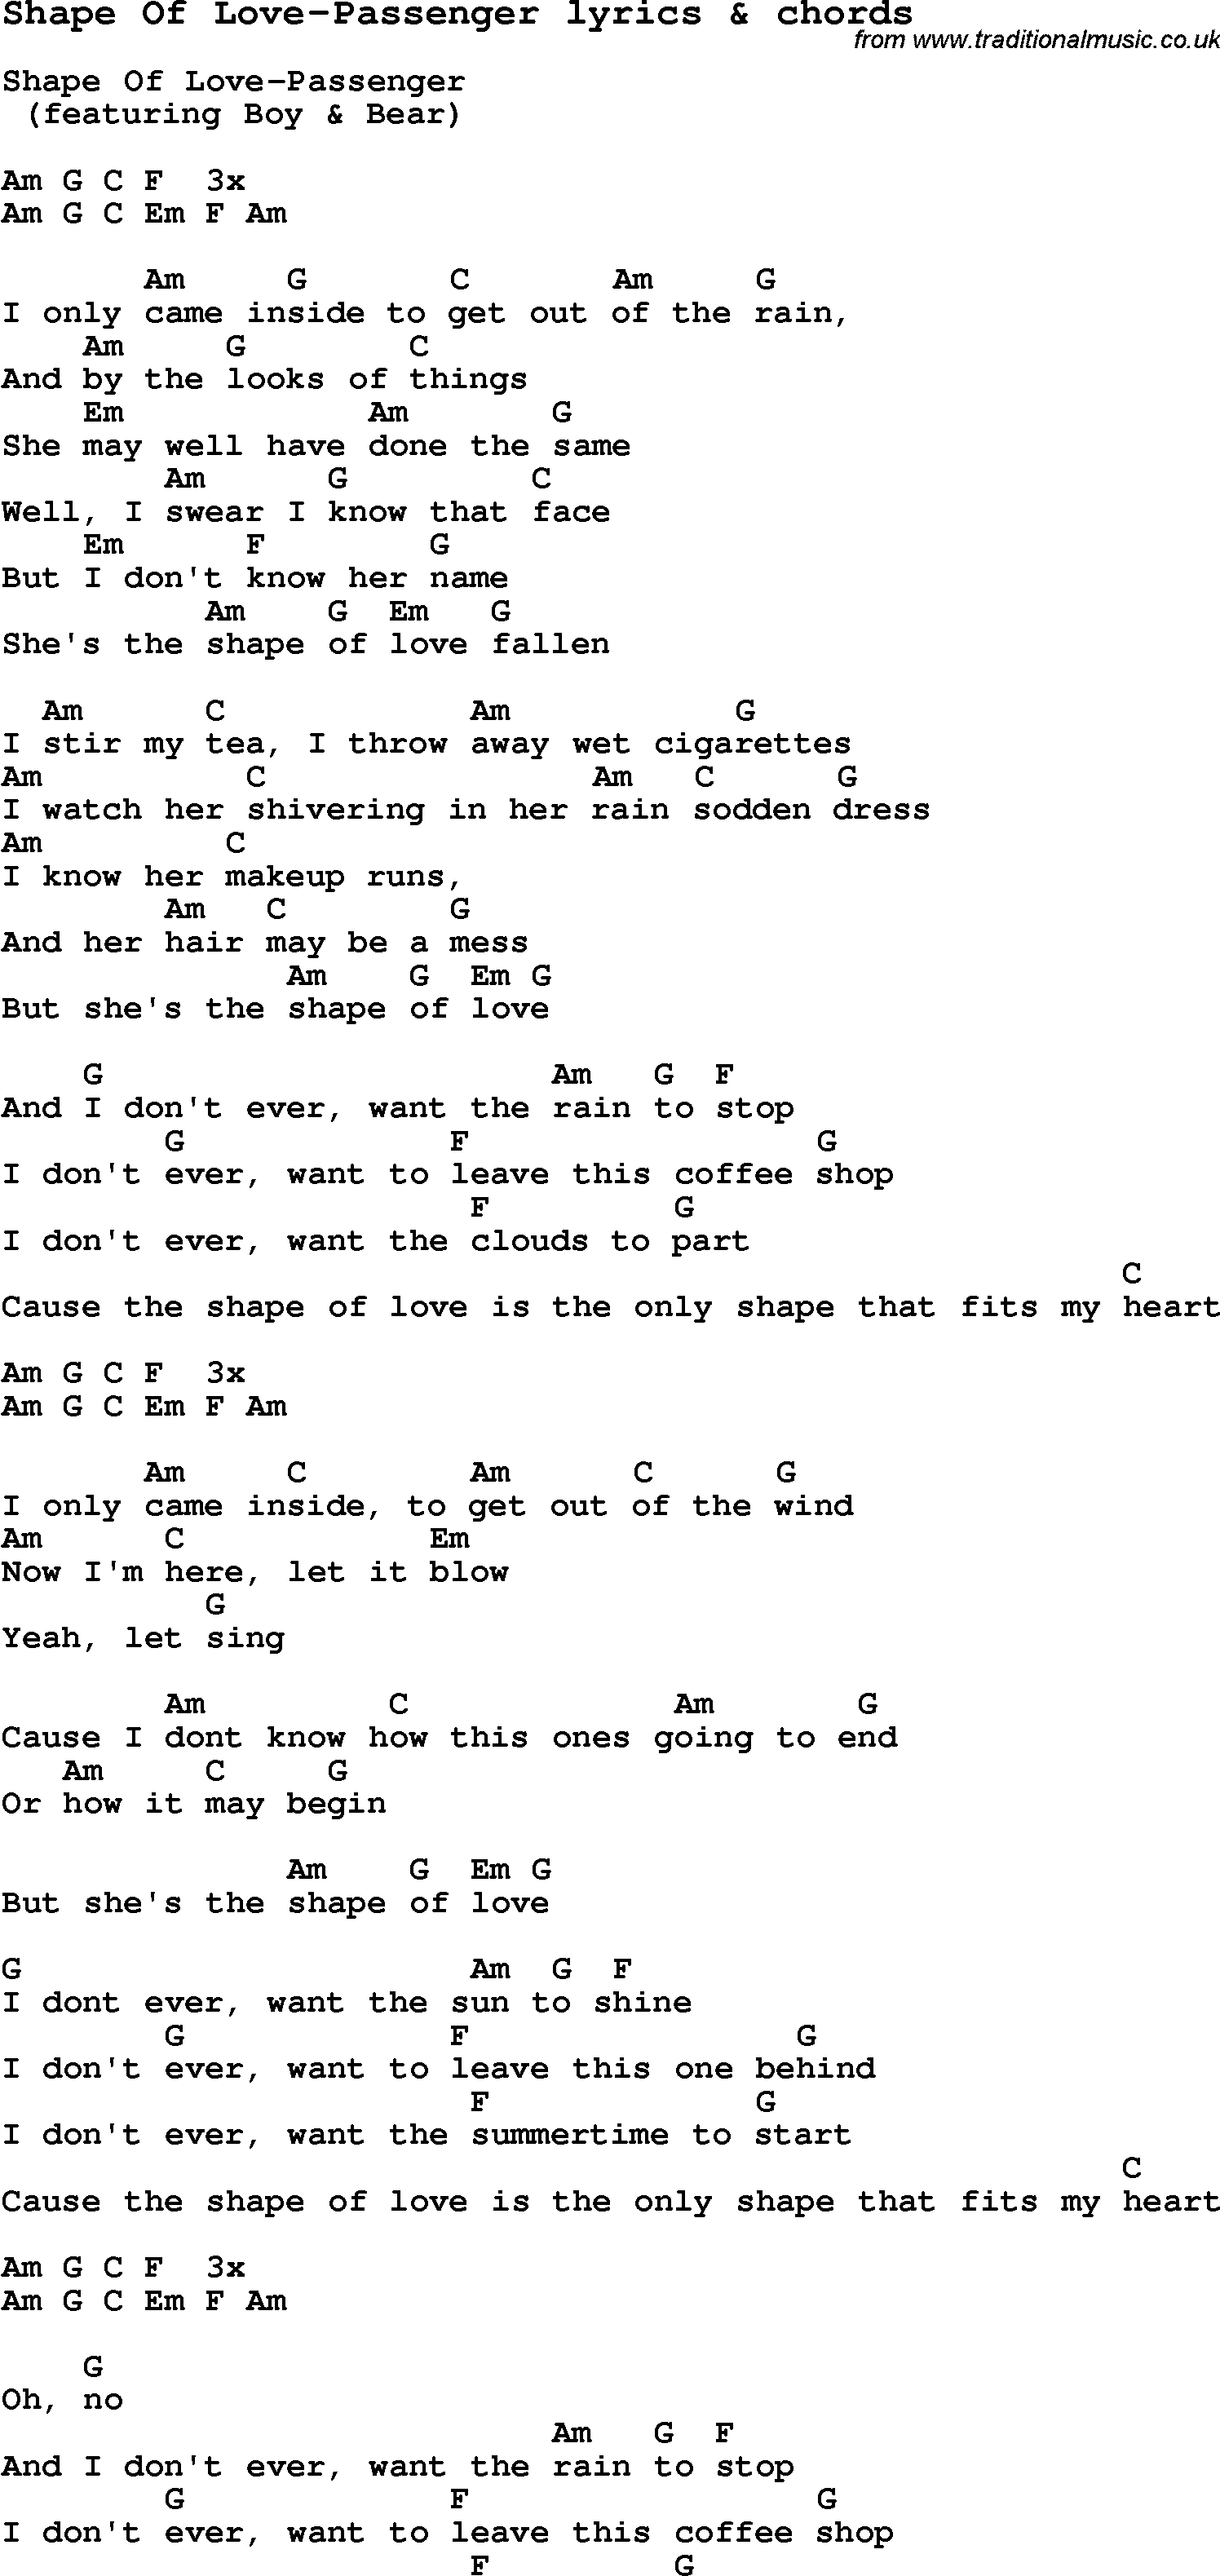 Love Song Lyrics for:Shape Of Love-Passenger with chords.